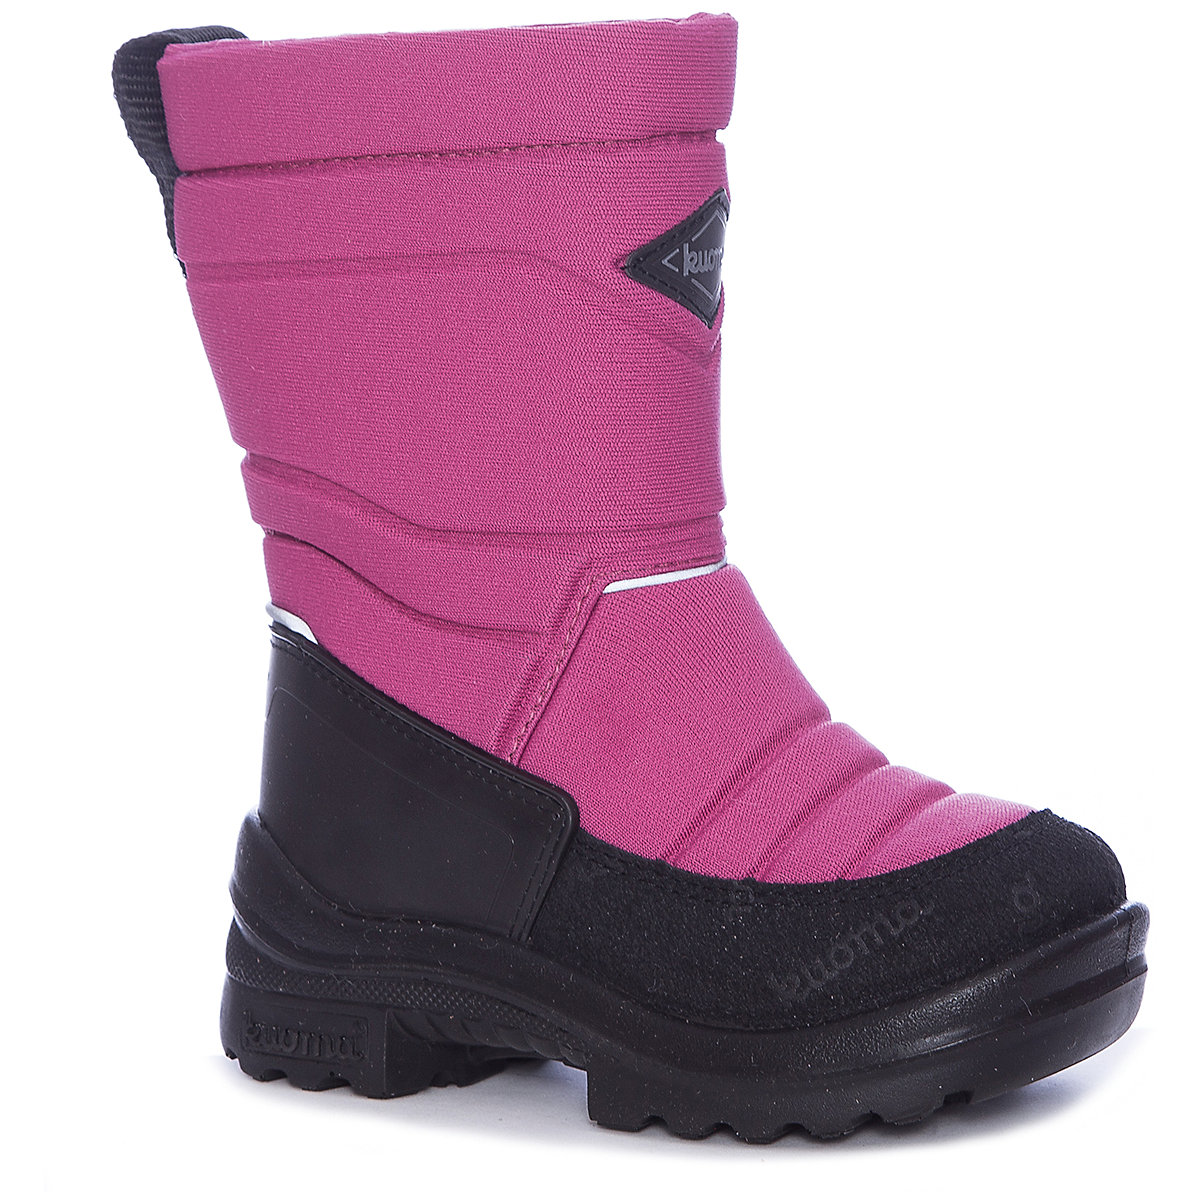 Boots KUOMA for girls 7118698 Valenki Uggi Winter Baby Kids Children shoes стул домотека омега 4 в 4 в 4 спв 4 в 4